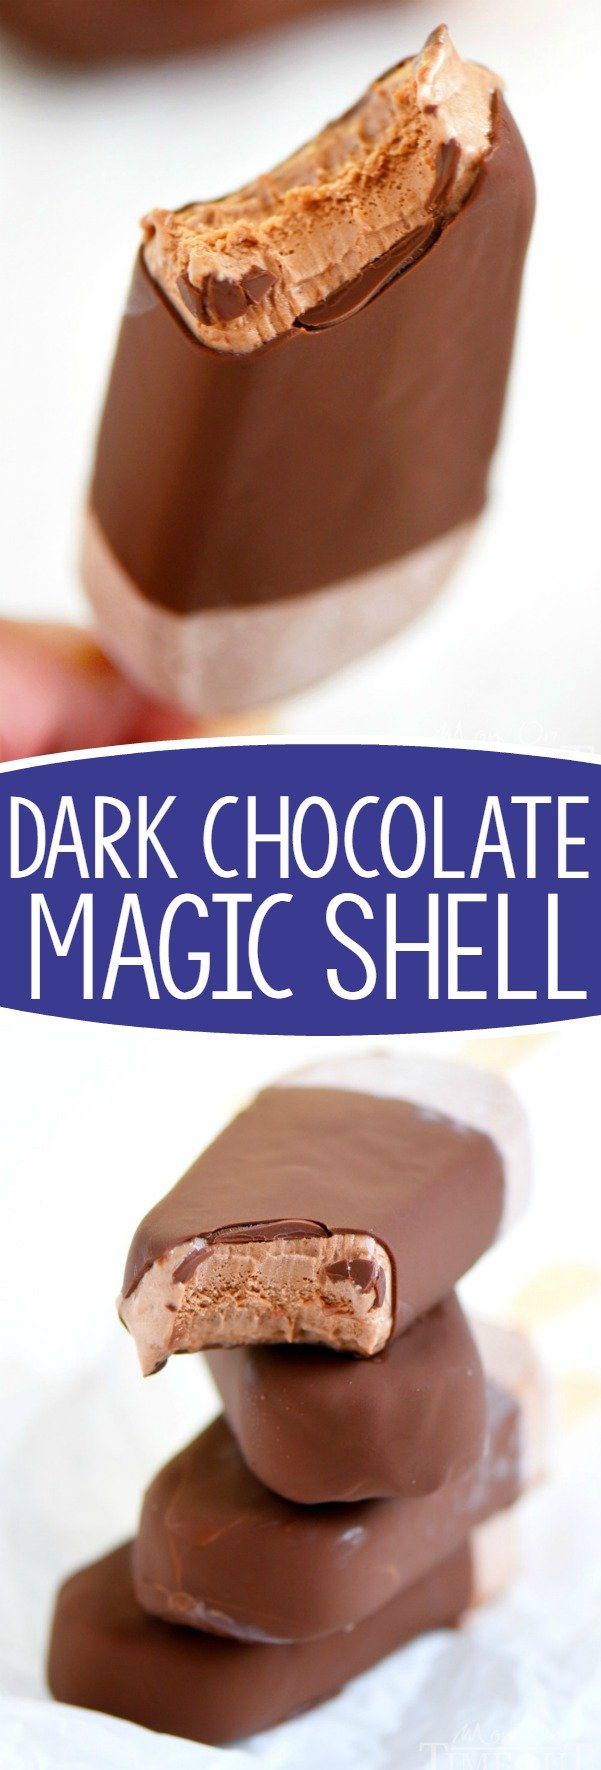 dark-chocolate magic shell recipe